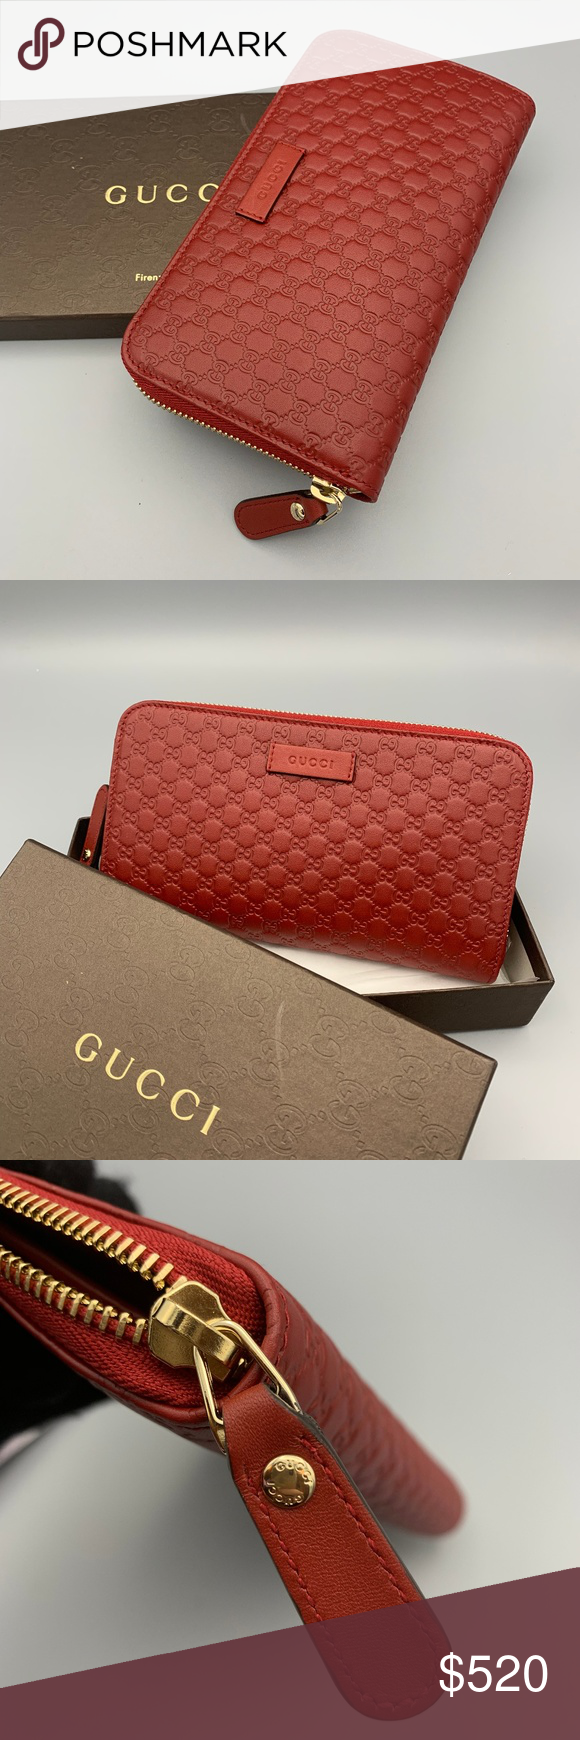 f2e242a7deb0 NWT GUCCI MicroGuccissima Leather Wallet 449391 100% Authentic New In Box Gucci  Micro GG Guccissima Red Leather Quilted Zip Around Wallet 449391 Original  ...